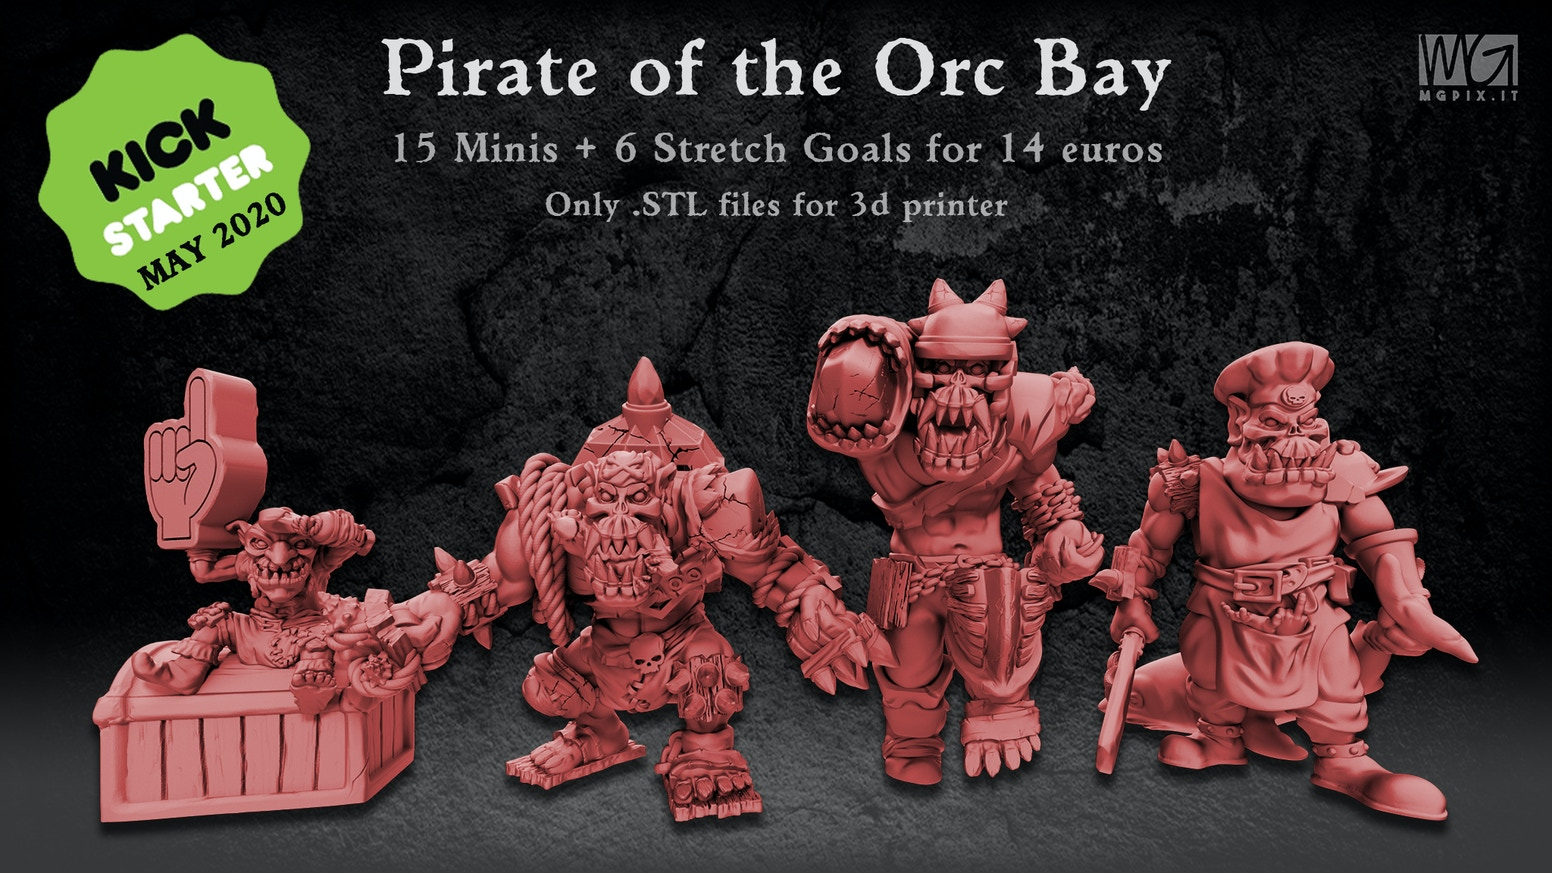 Pirate Orc themed miniatures for Collectors or Blood Bowl players! Only STL files for 3d printer